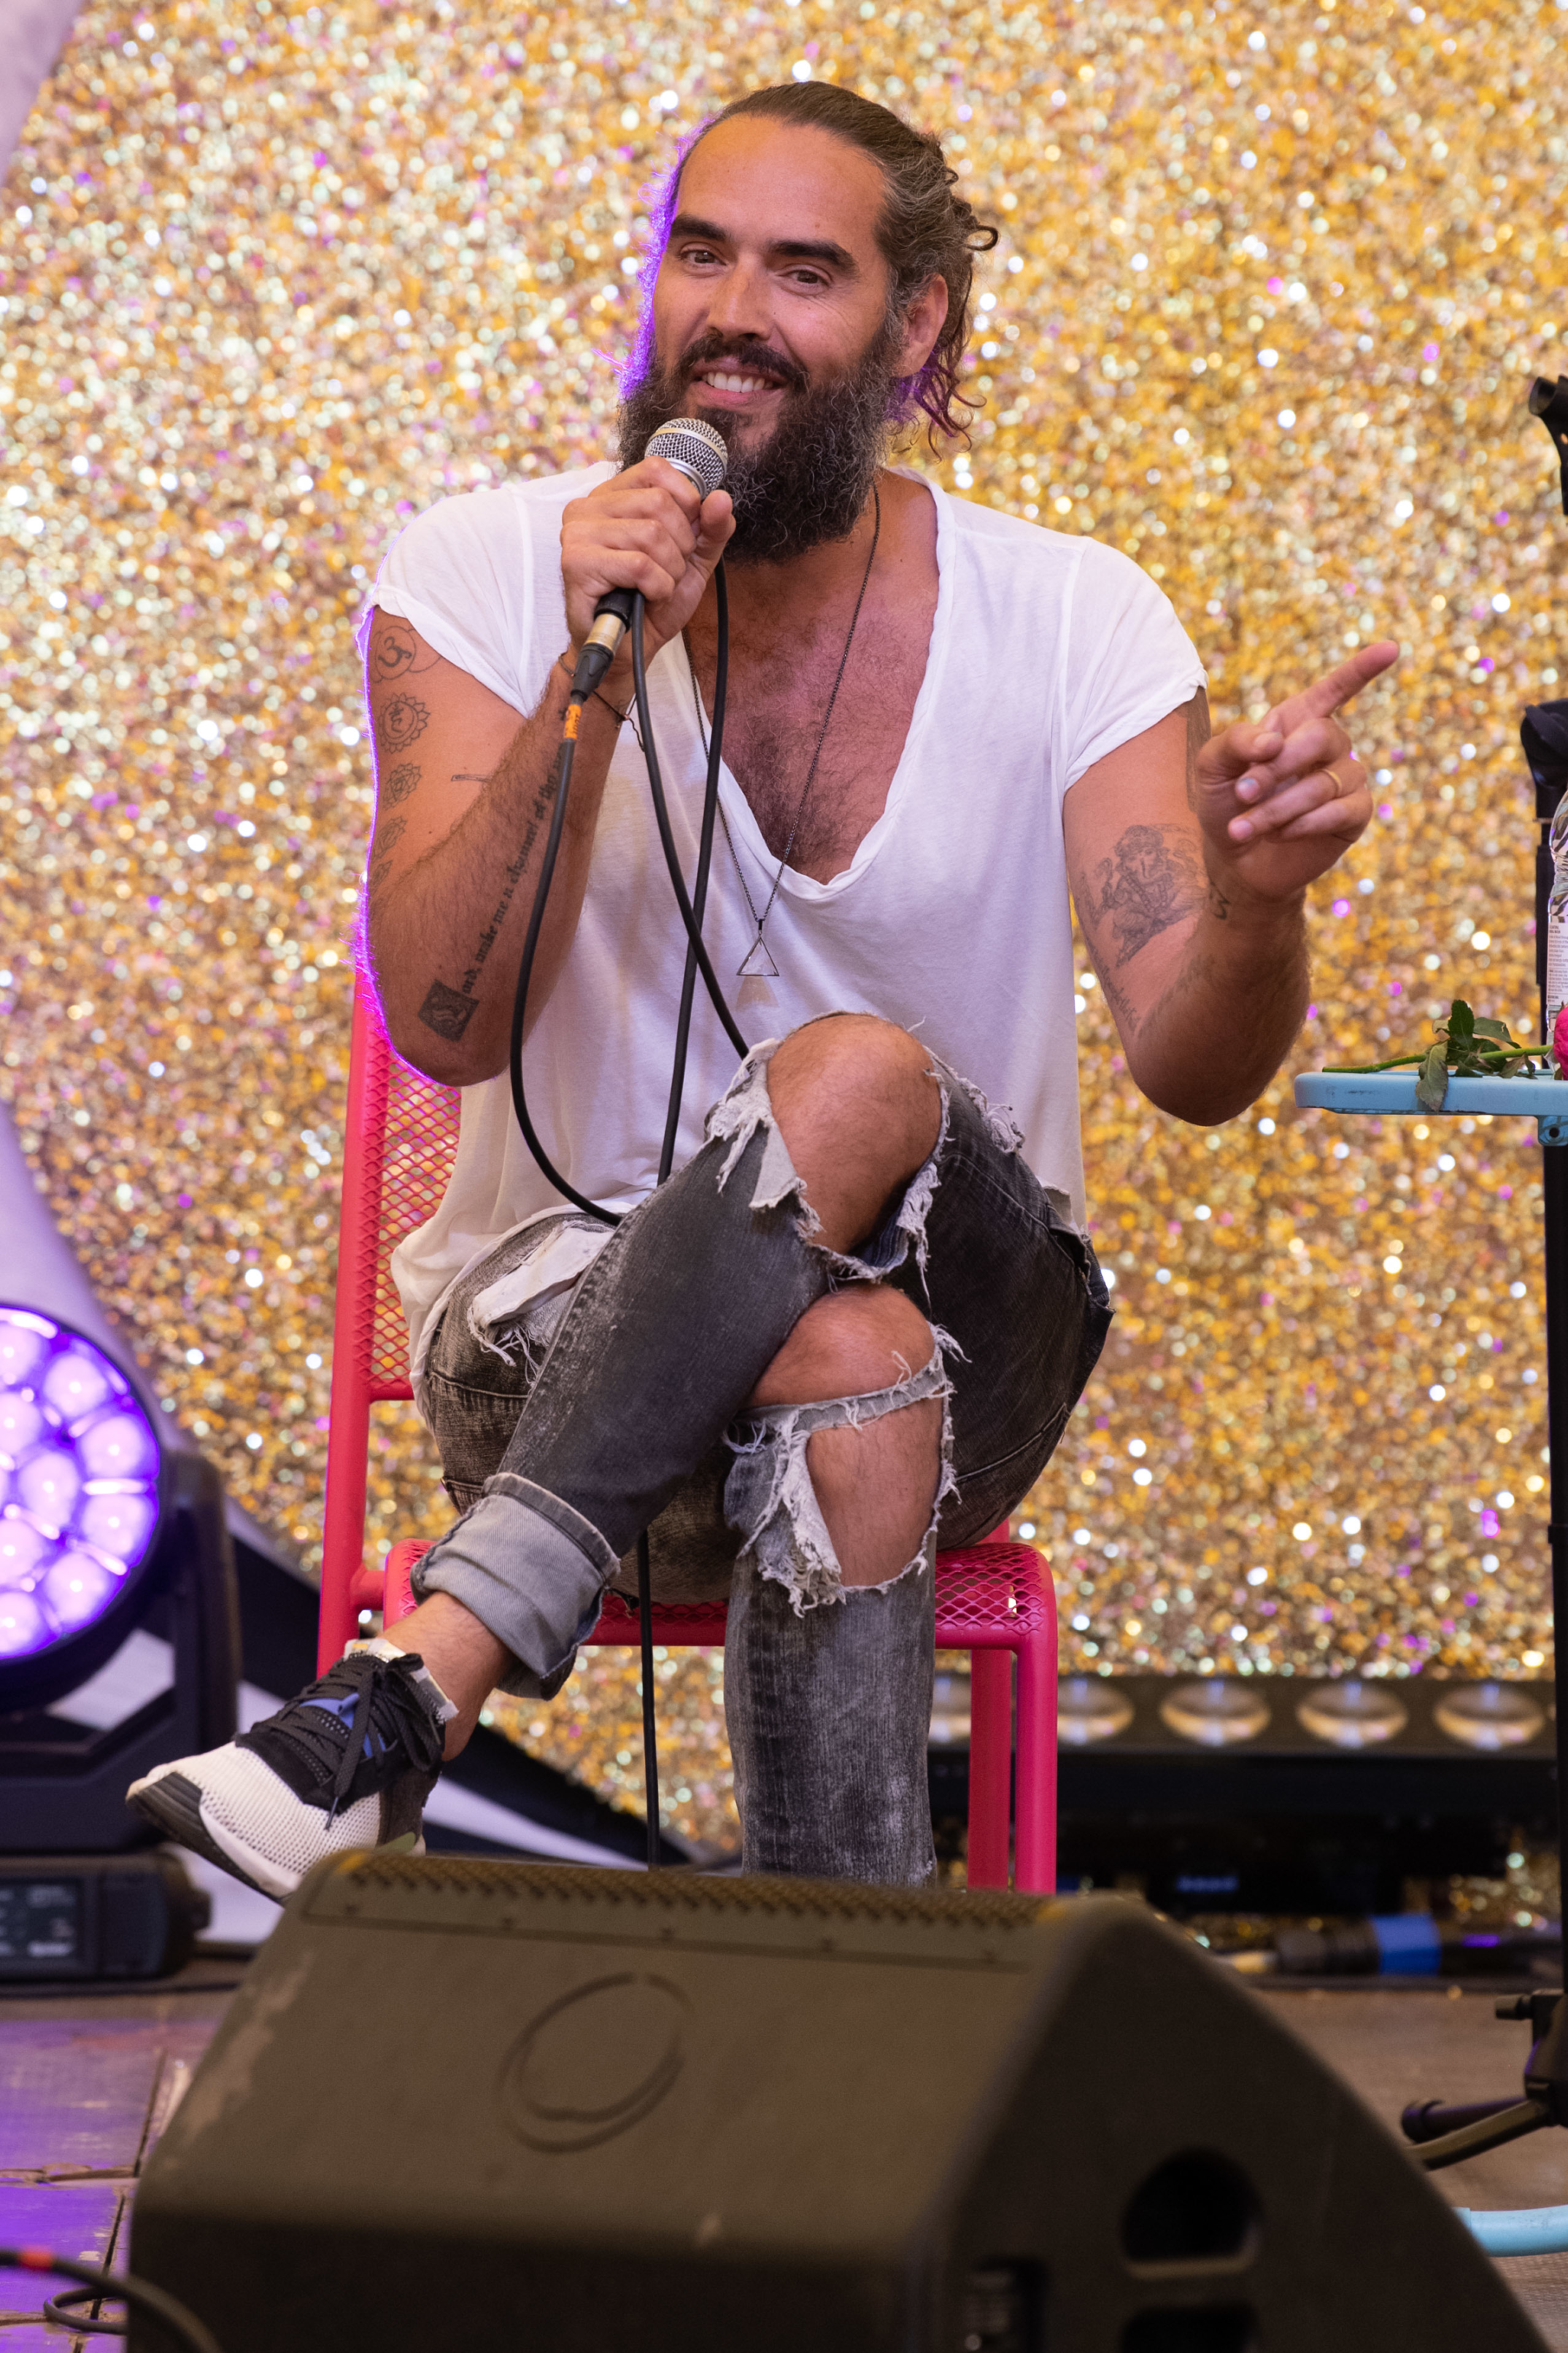 Russell Brand appears at Port Eliot Festival at St Germans in Cornwall on July 28, 2019.